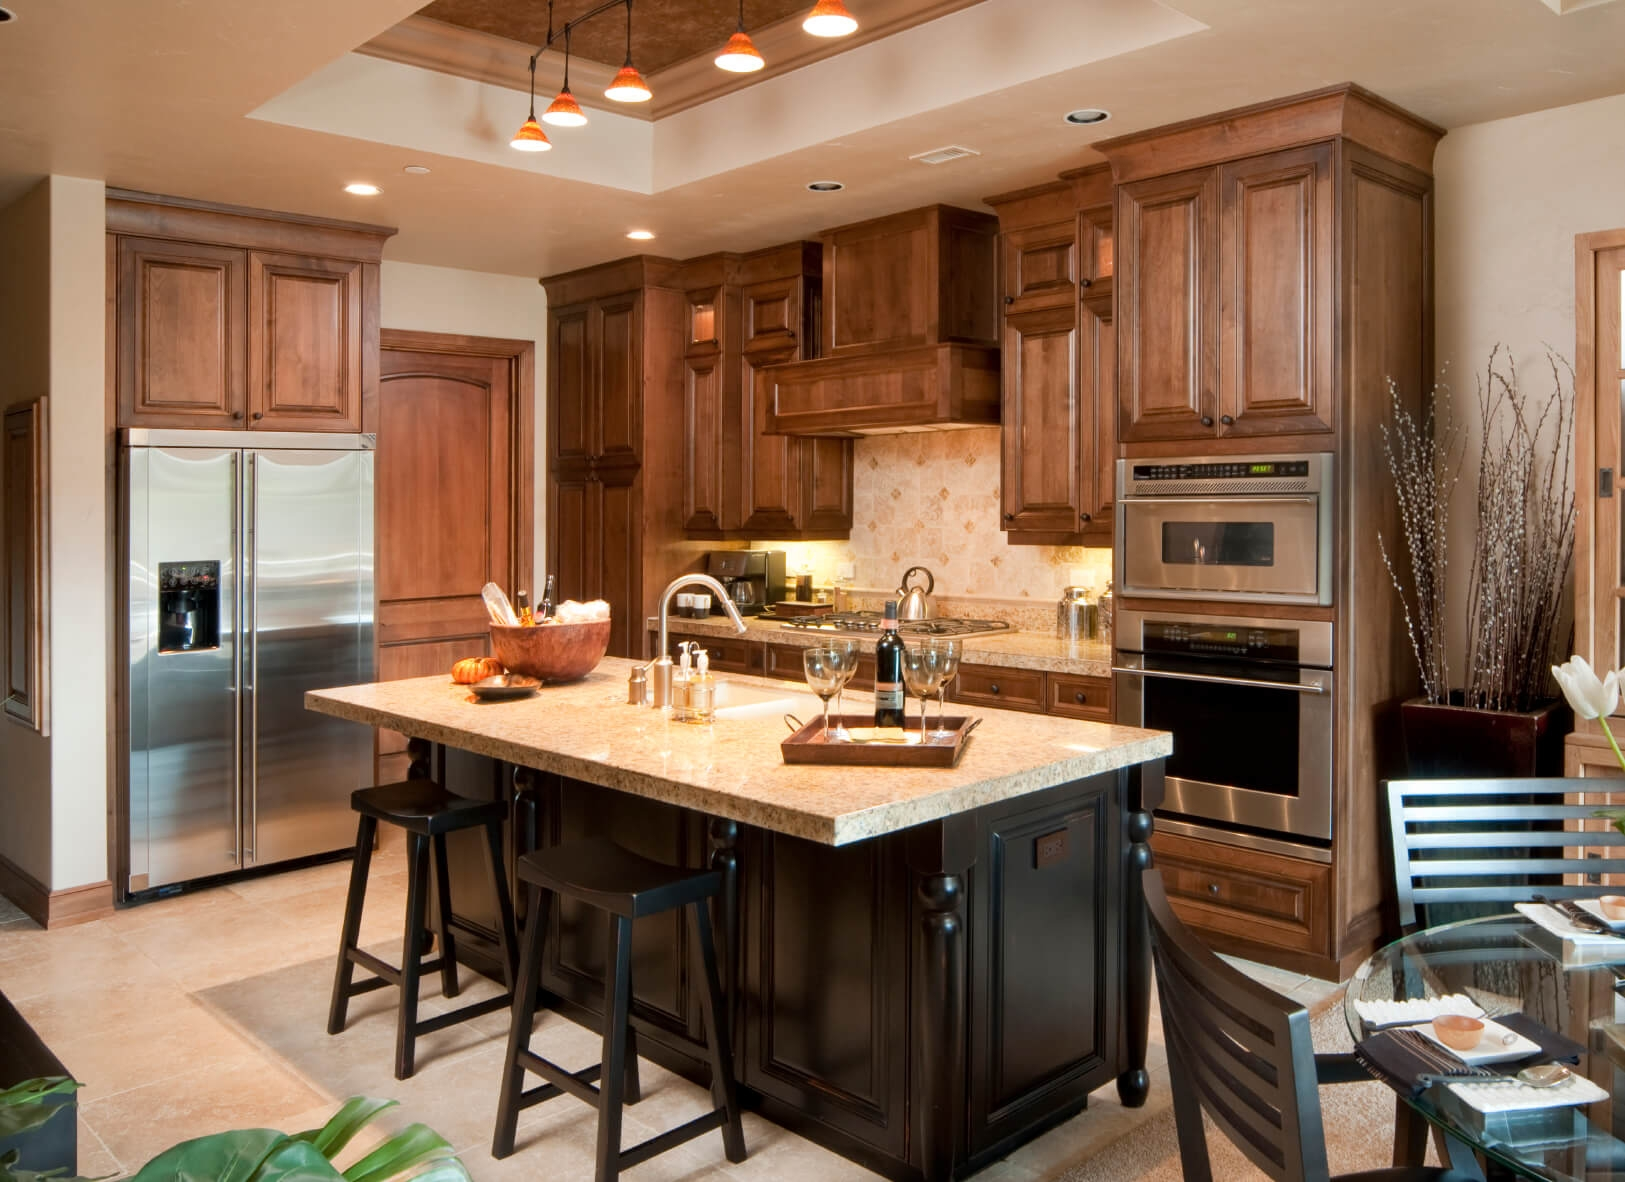 Dream Kitchen With Cherry Cabinets48 luxury dream kitchen designs worth every penny photos